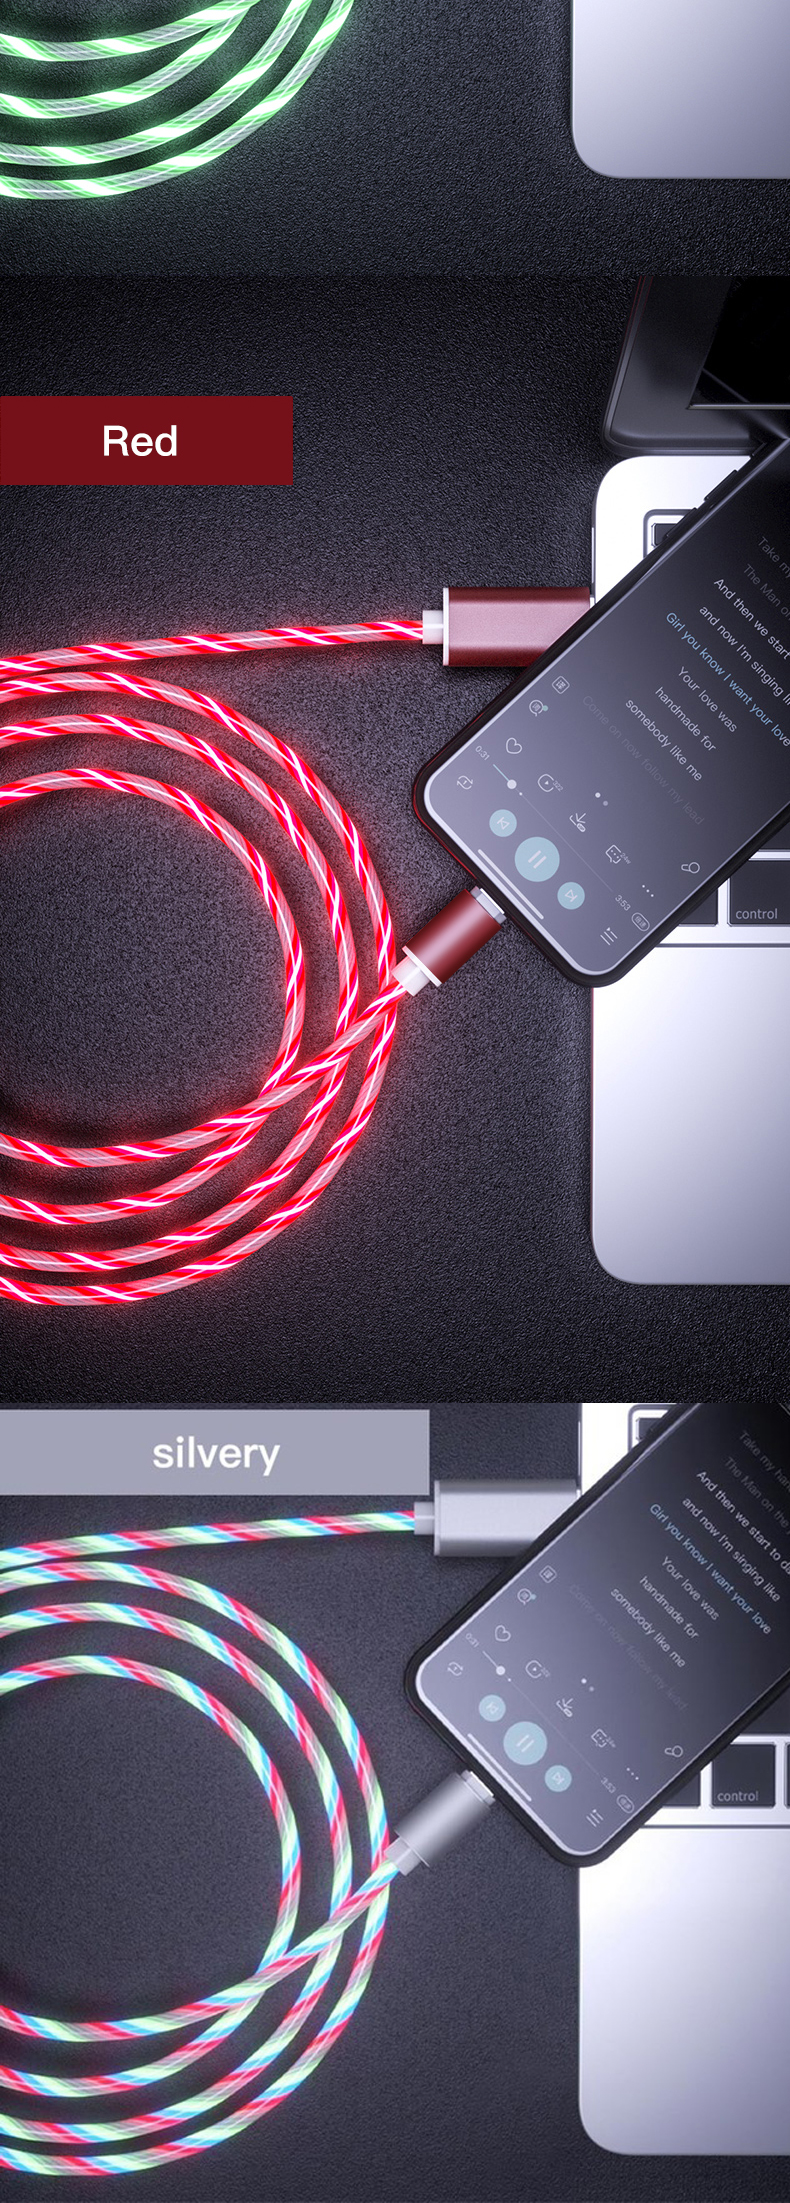 Amazon LED Glow Flowing magnetic Charger usb cable Type C Micro USB C 8 Pin Charging Cable for iphone Magnetic Charge Wire Cord